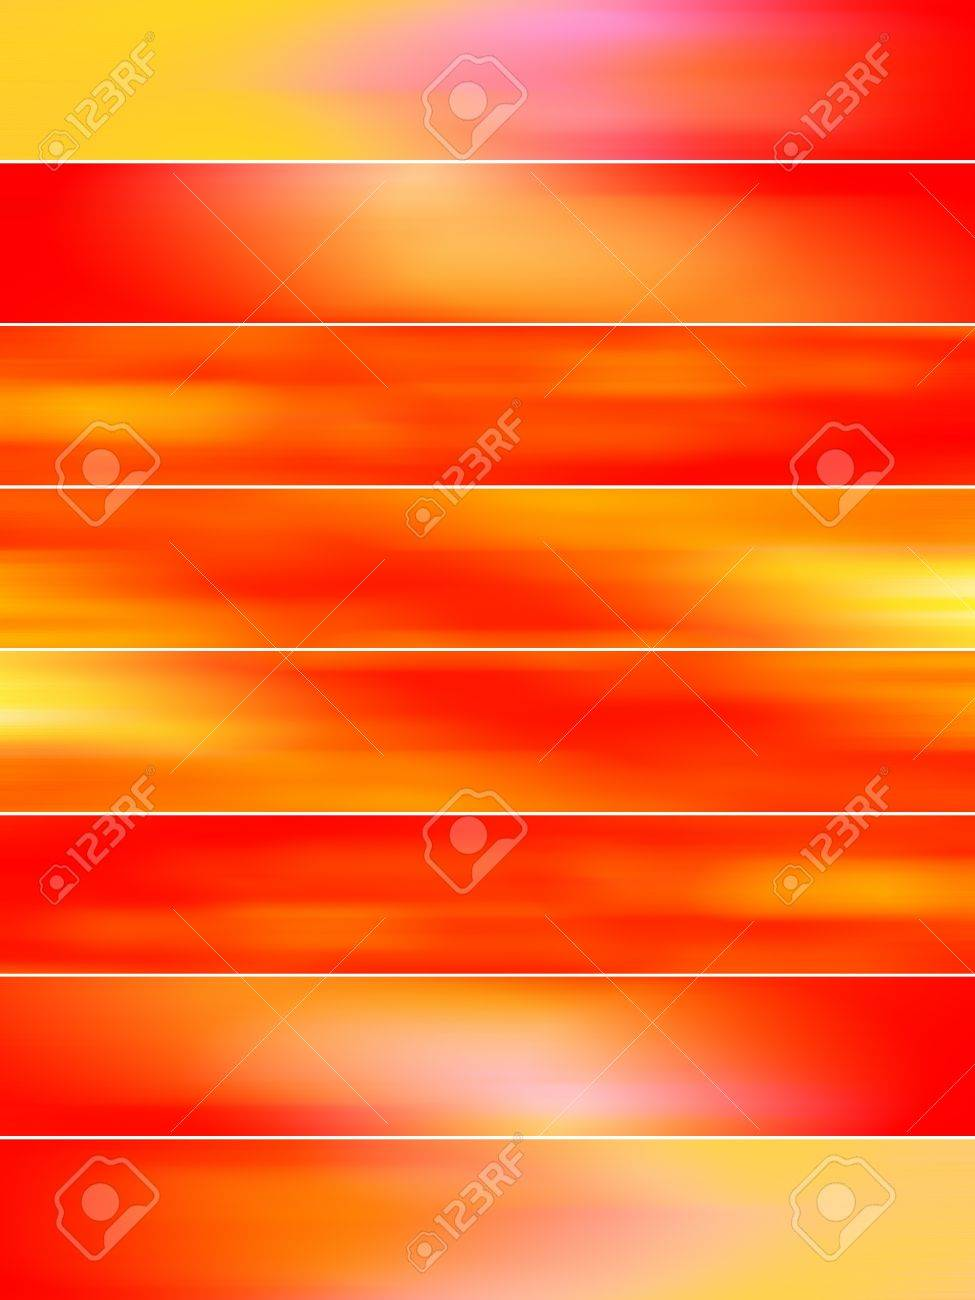 Abstract redish orange blured banners backdrops Stock Photo - 11988946